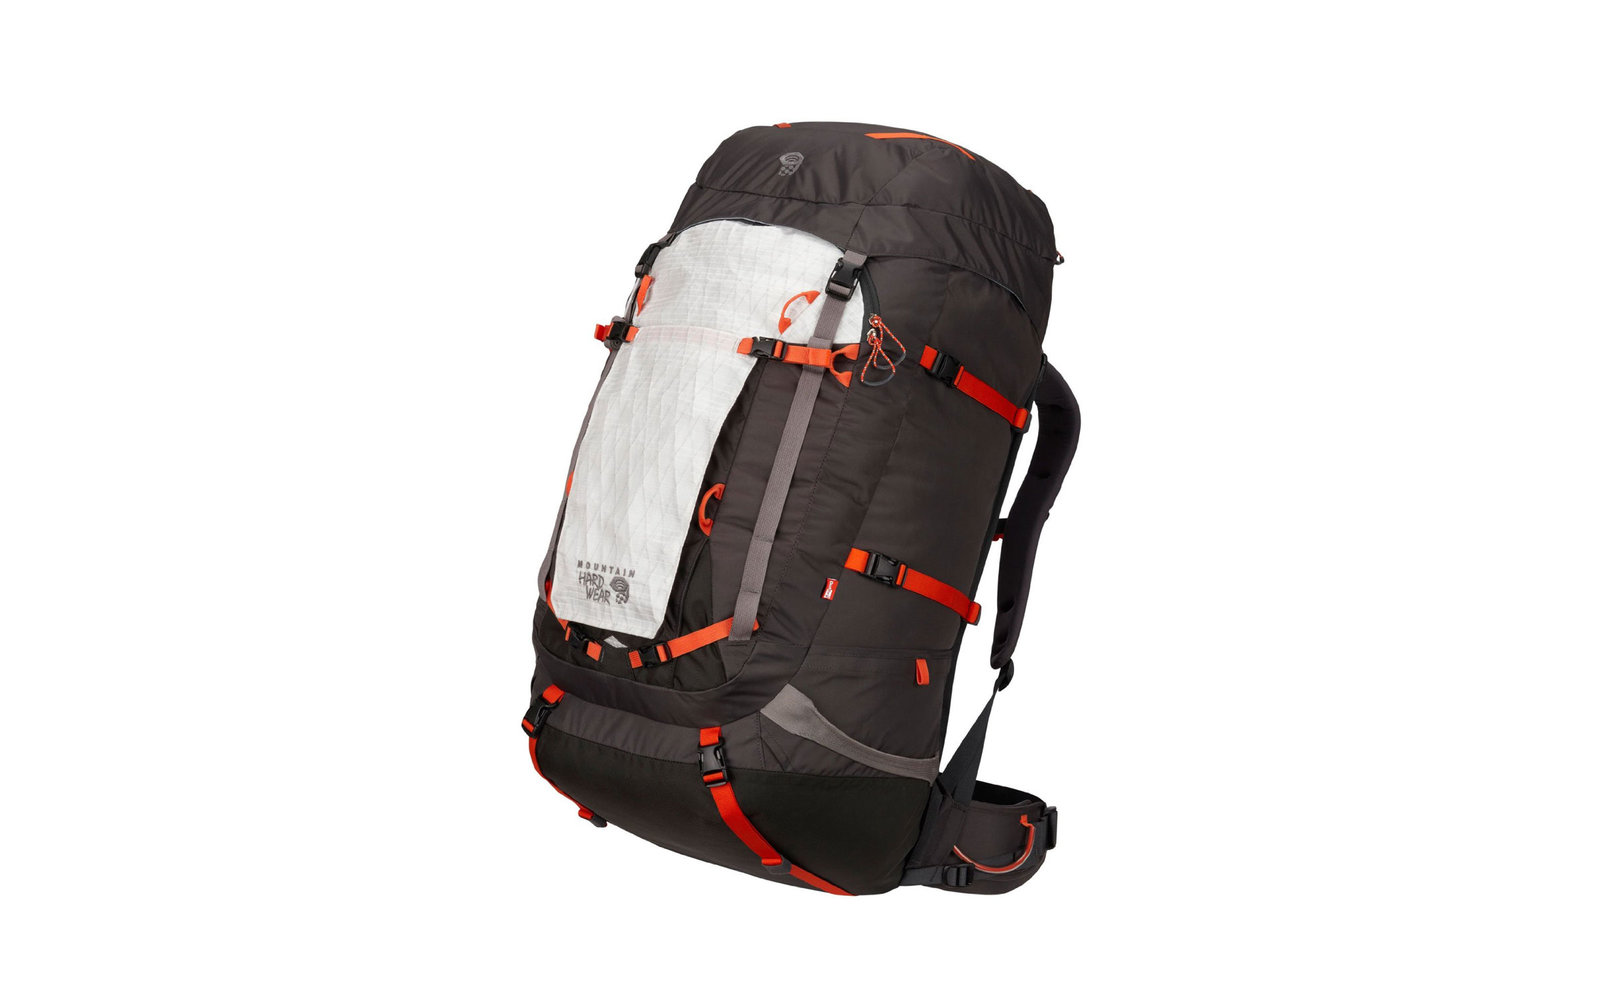 b0dceb4f17eb The Best Hiking Backpacks for Travelers